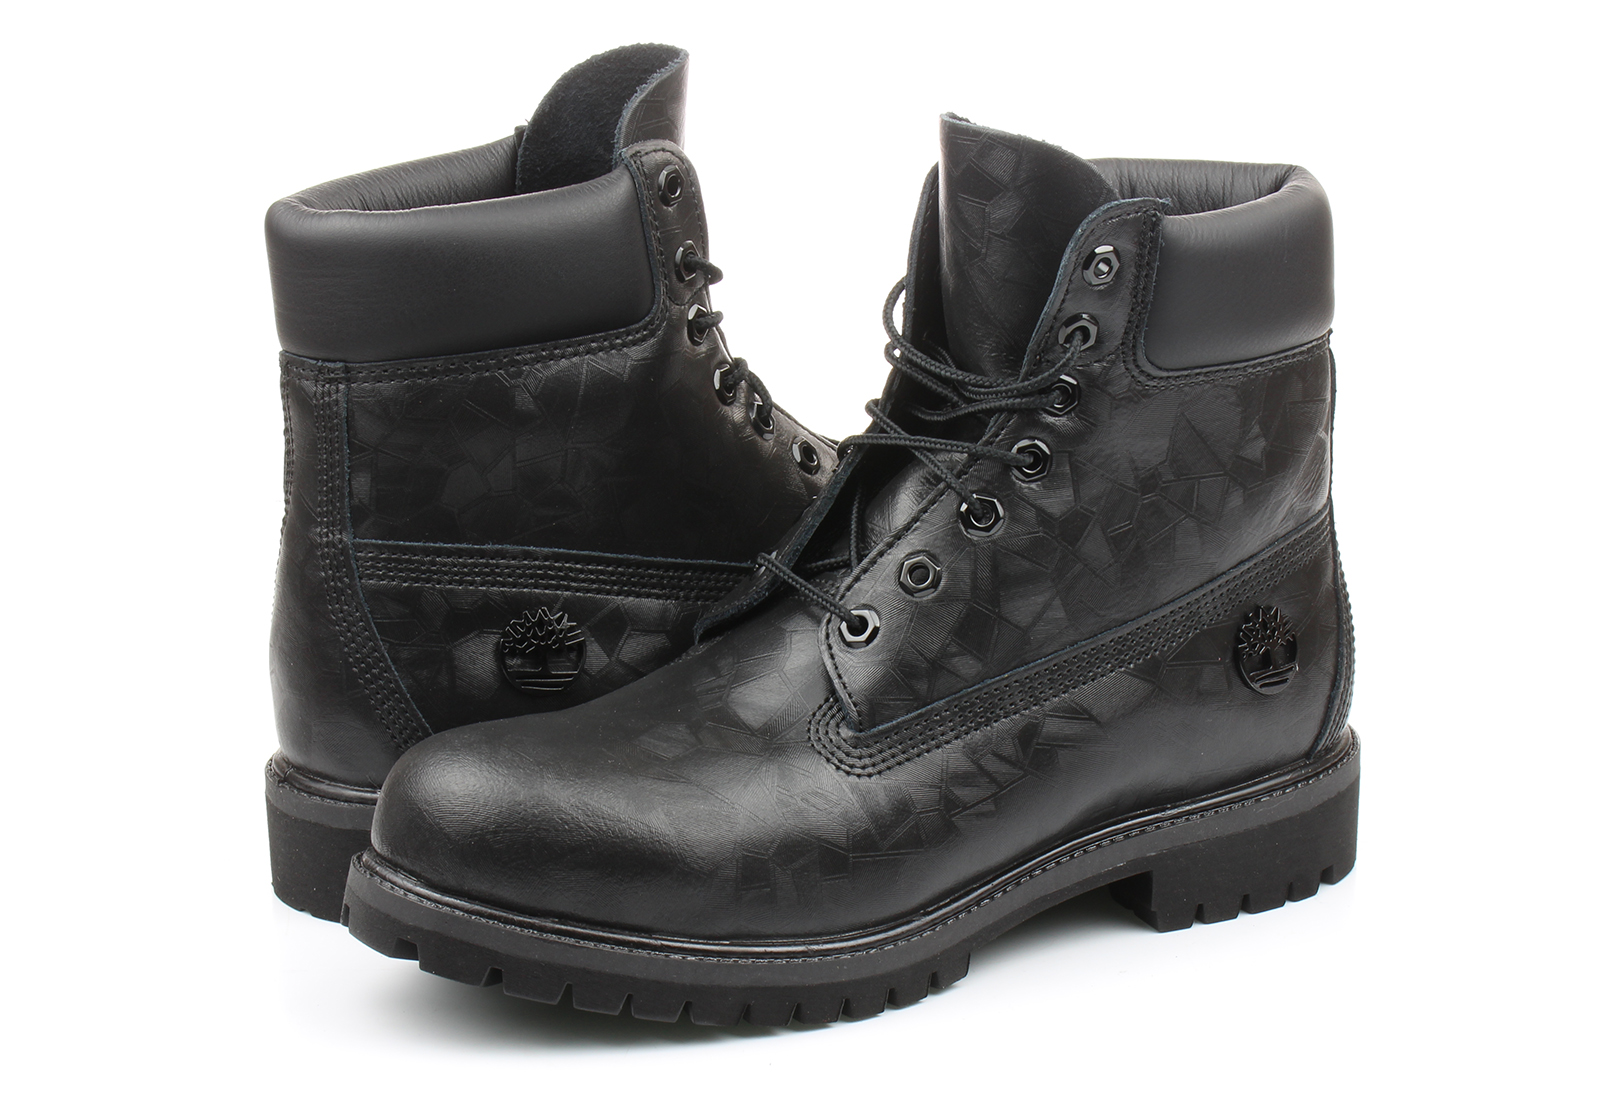 Timberland Bakancs - 6 Inch Prem Boot - a1jd9-blk - Office Shoes ... 9890c8b8b4